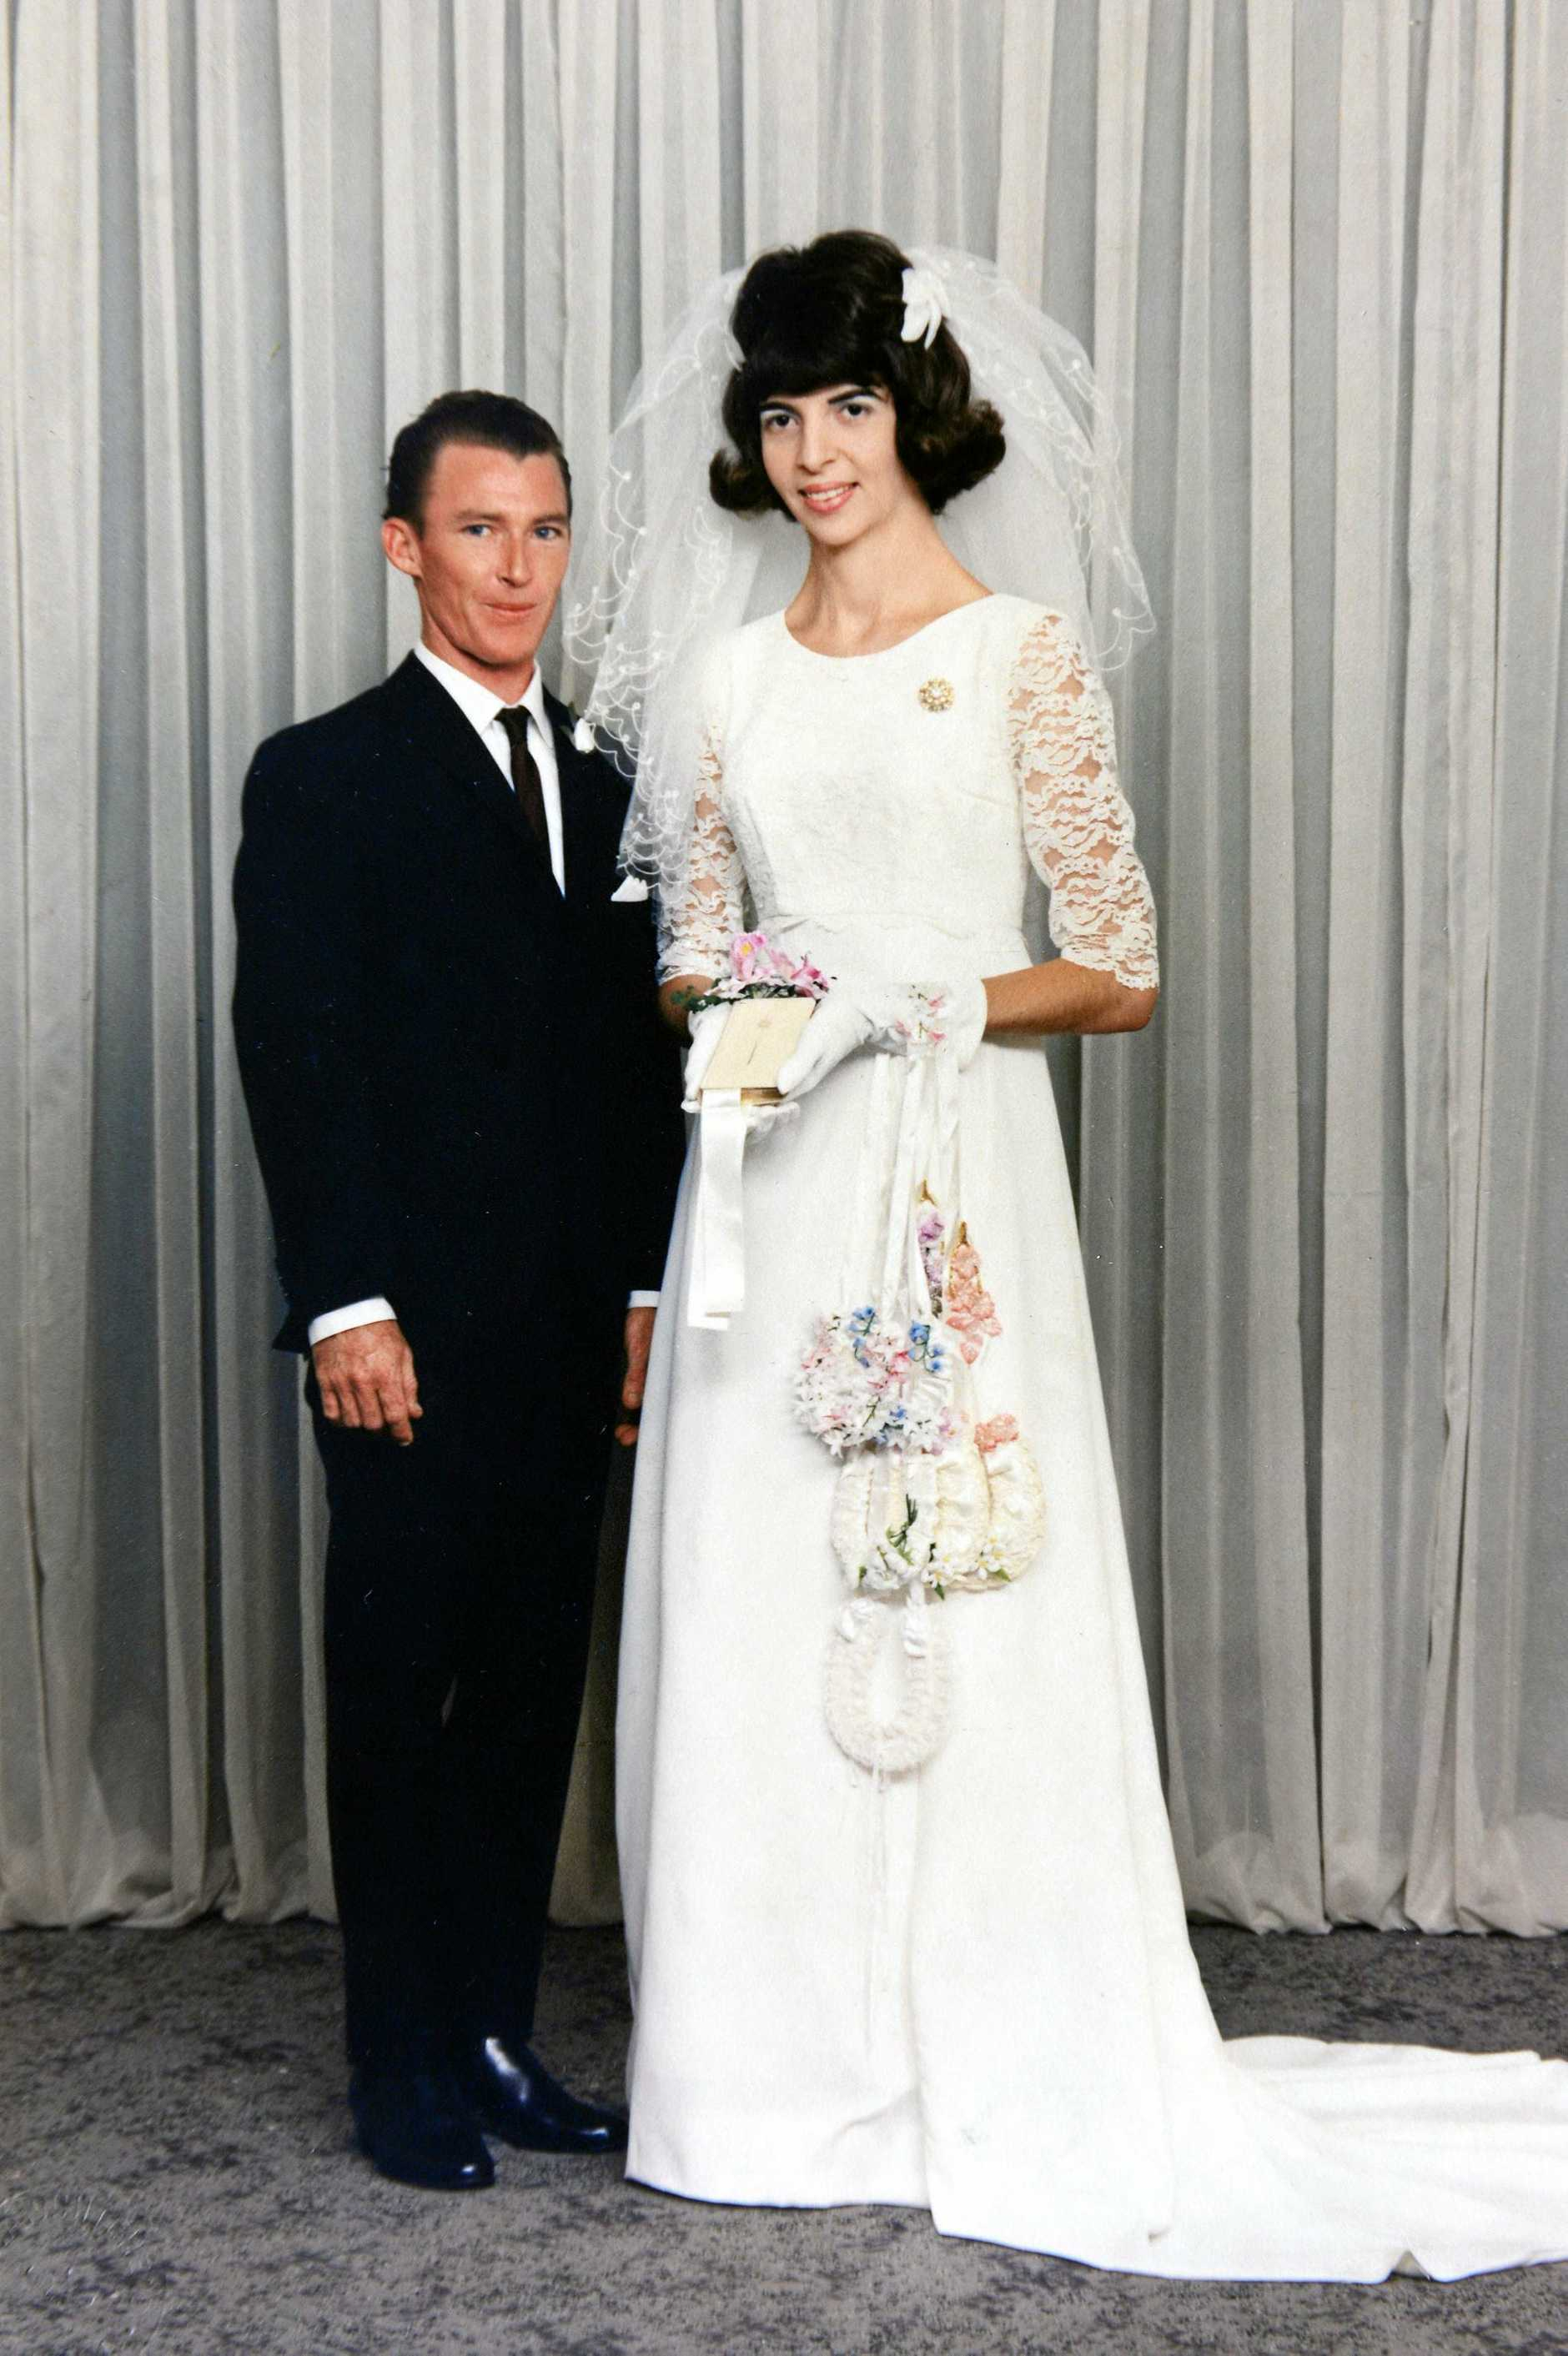 John and Shirley Dickens of Yamanto are celebrating their 50th wedding anniversary.